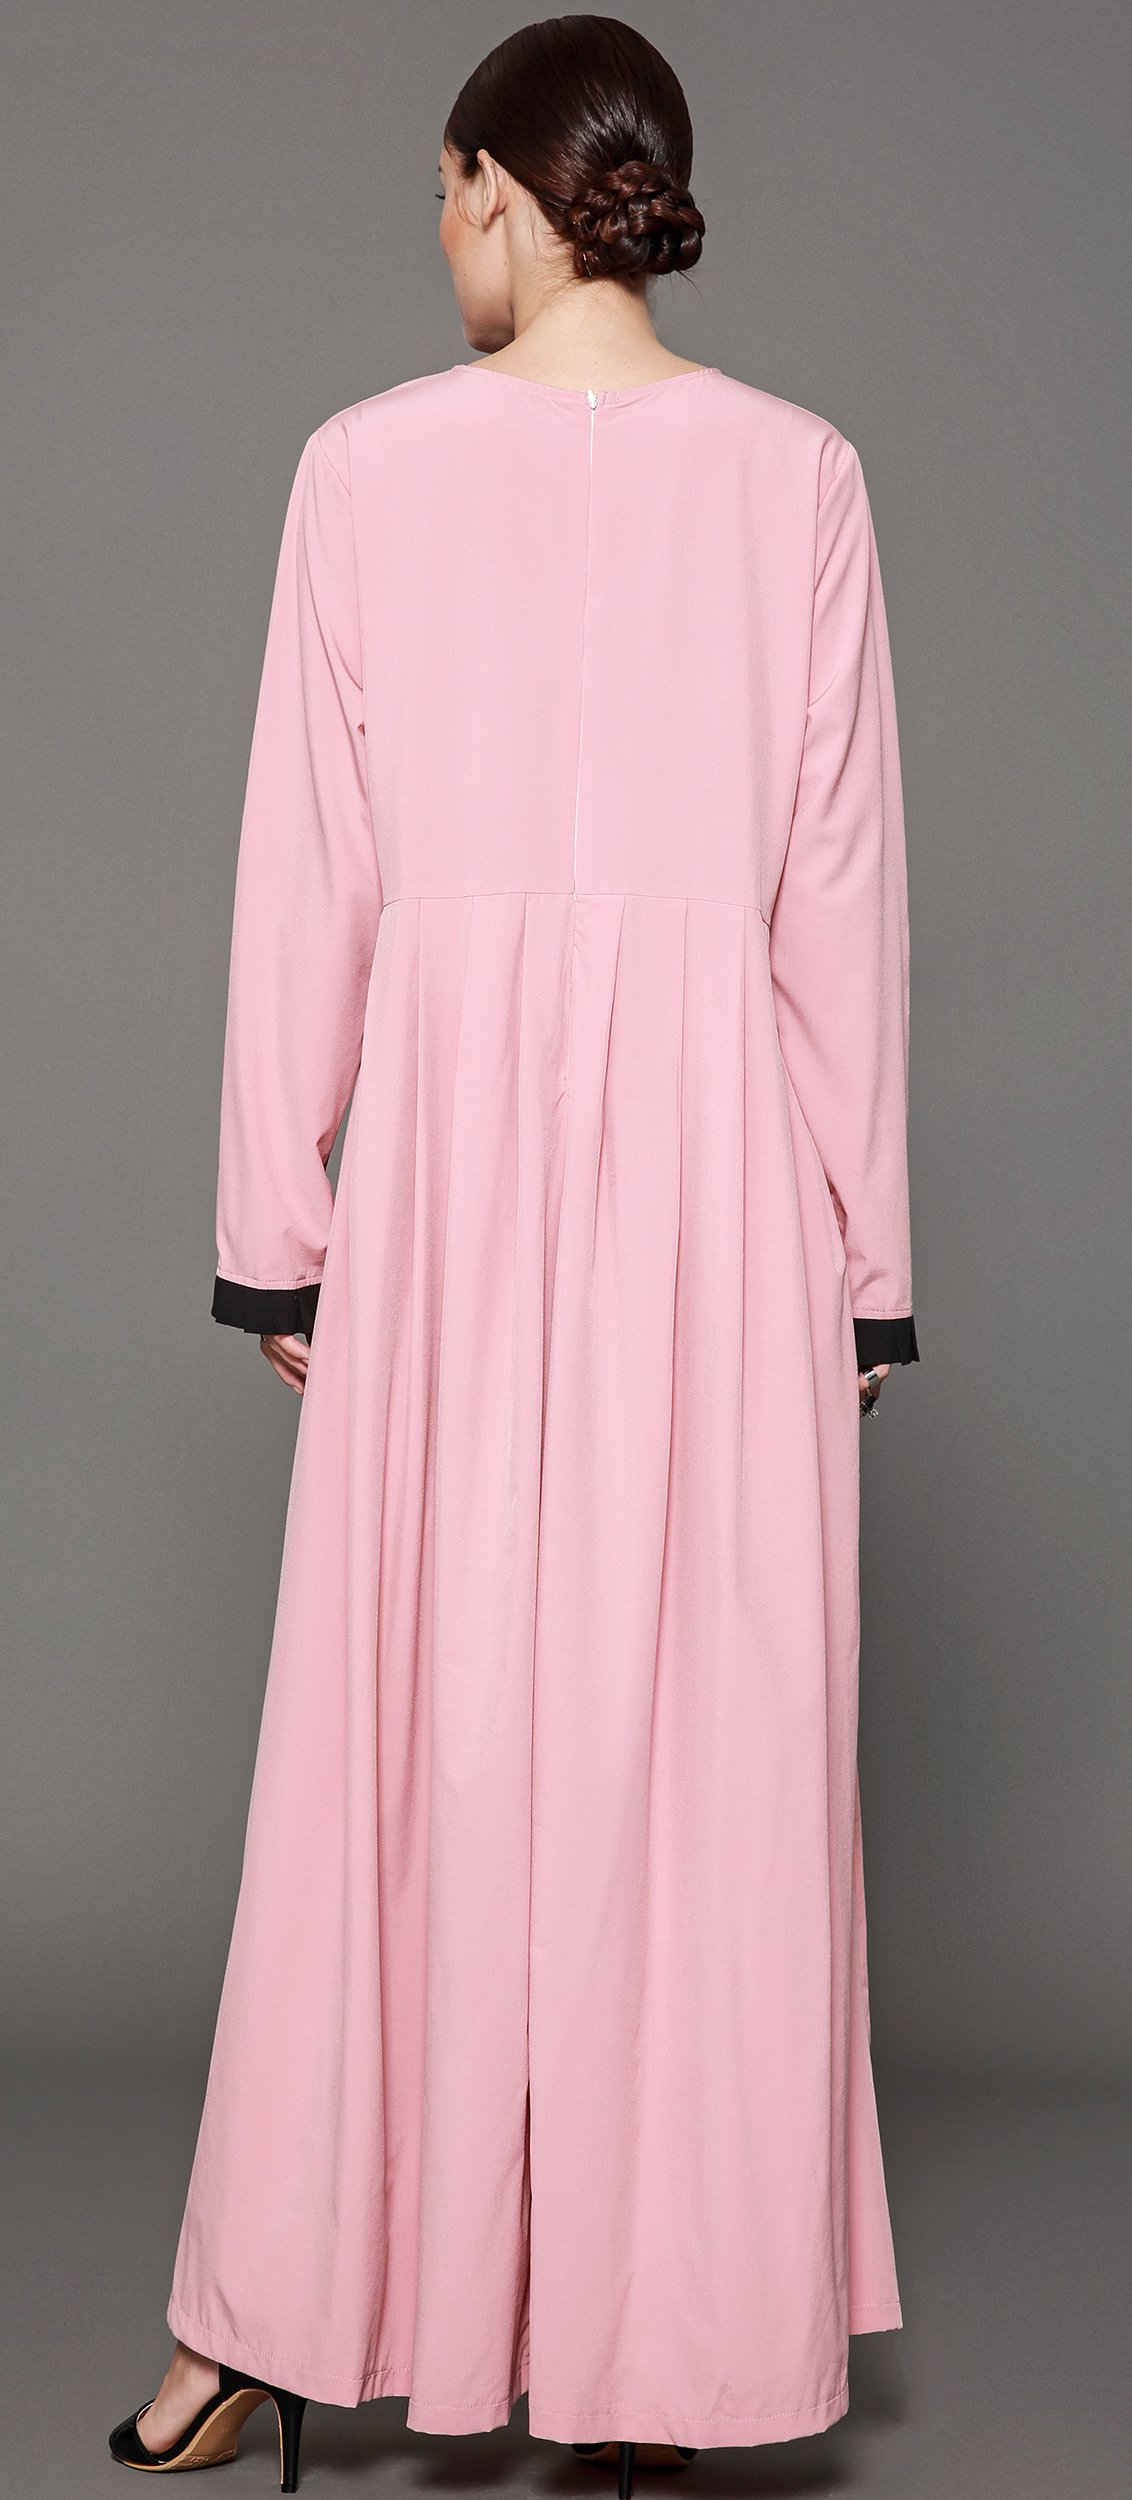 Ababalaya Women's Elegant Modest Muslim Full Length O-Neck Solid Pleated Runway Abaya S-4XL,Pink,Tag Size L = US Size 10-12 by Ababalaya (Image #2)